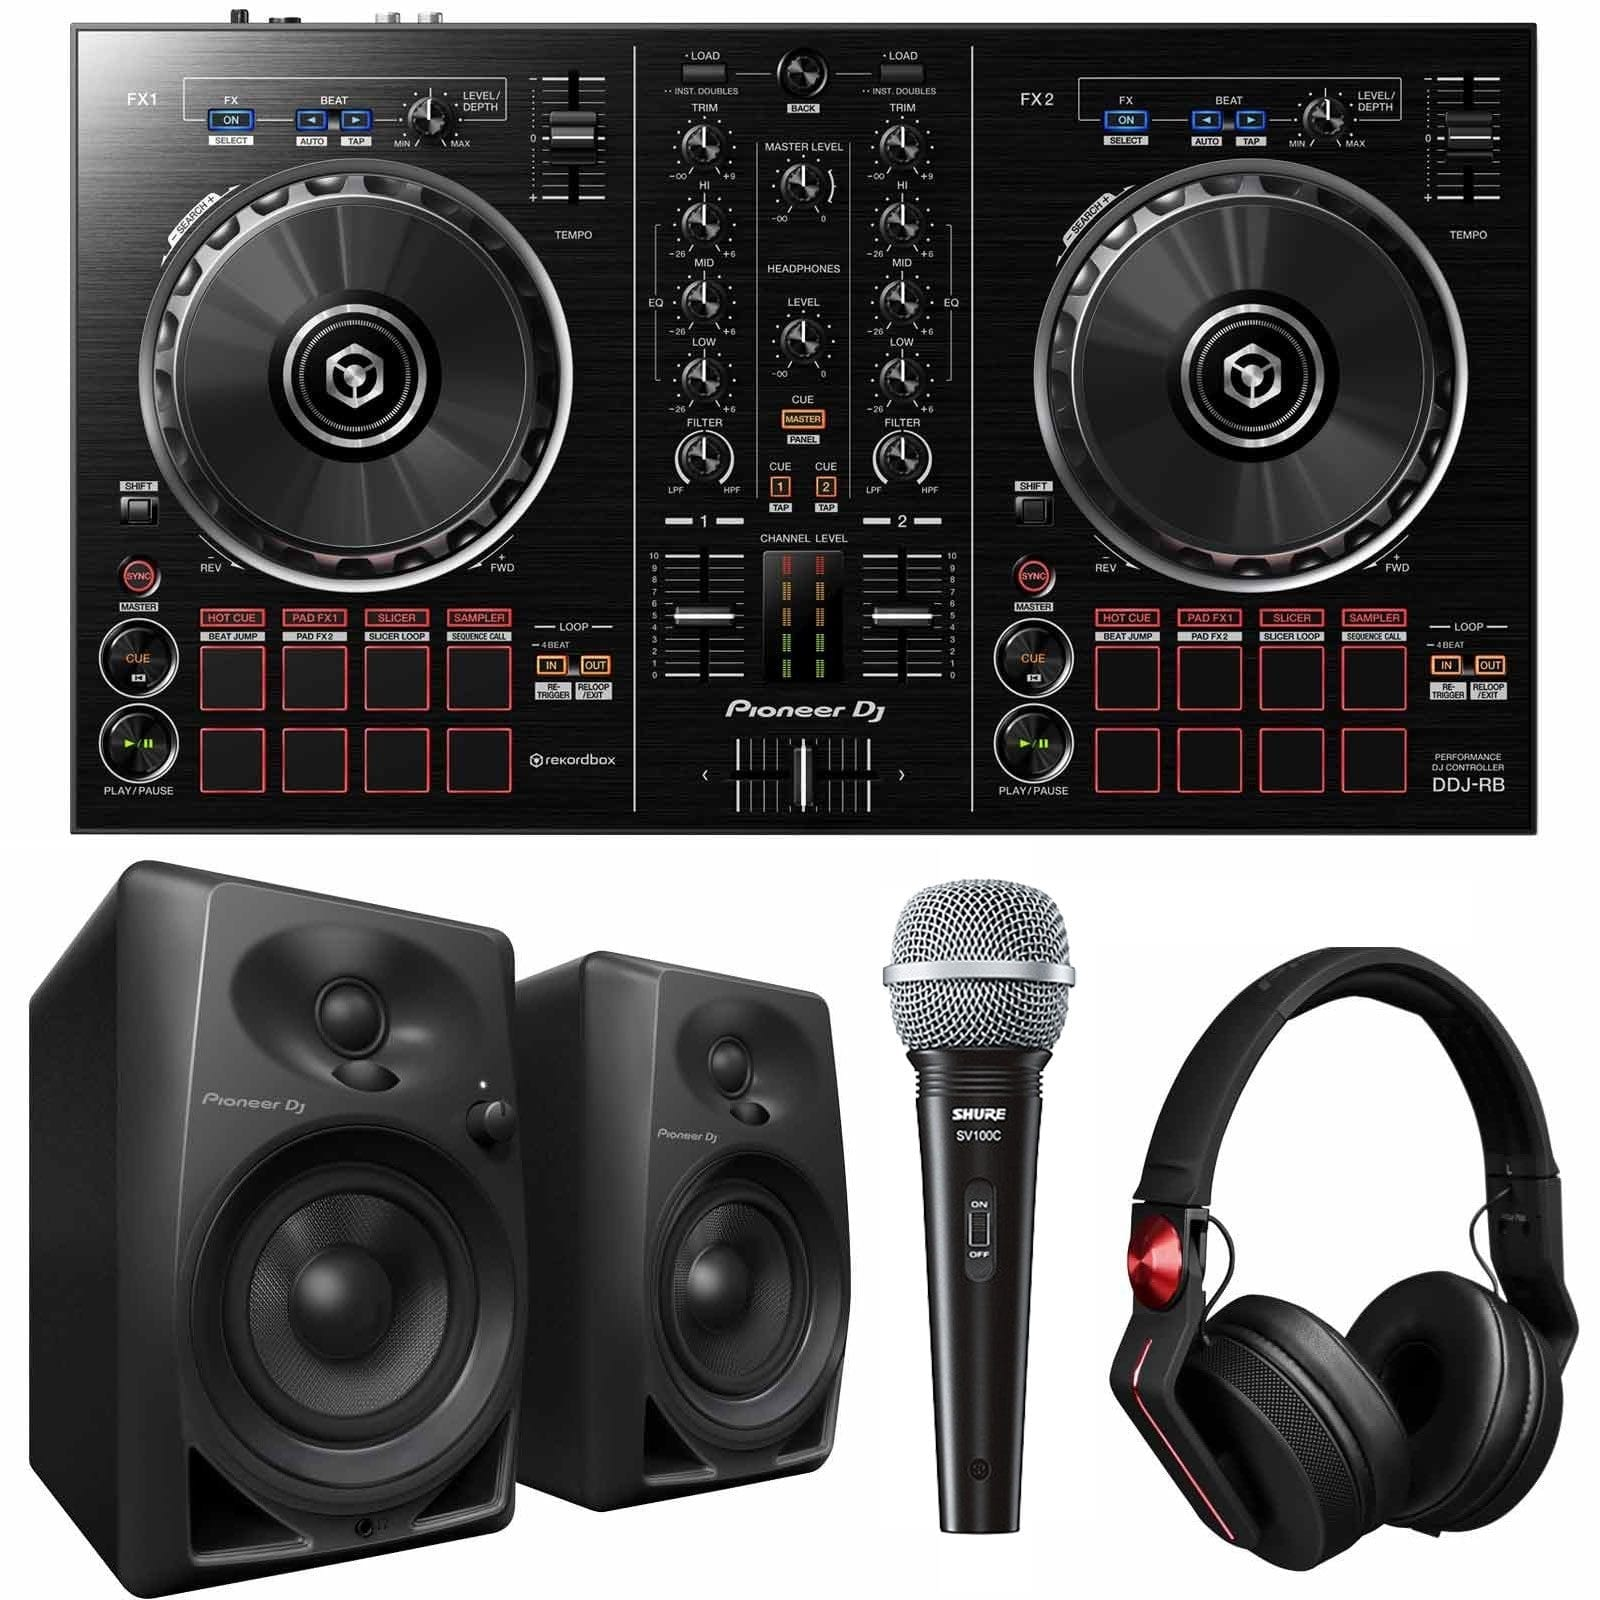 pioneer-pk-stp02-ddj-rb-dj-controller-starter-kit-with-dm-40-active-monitor-speakers-hdj-700-dj-headphones-928